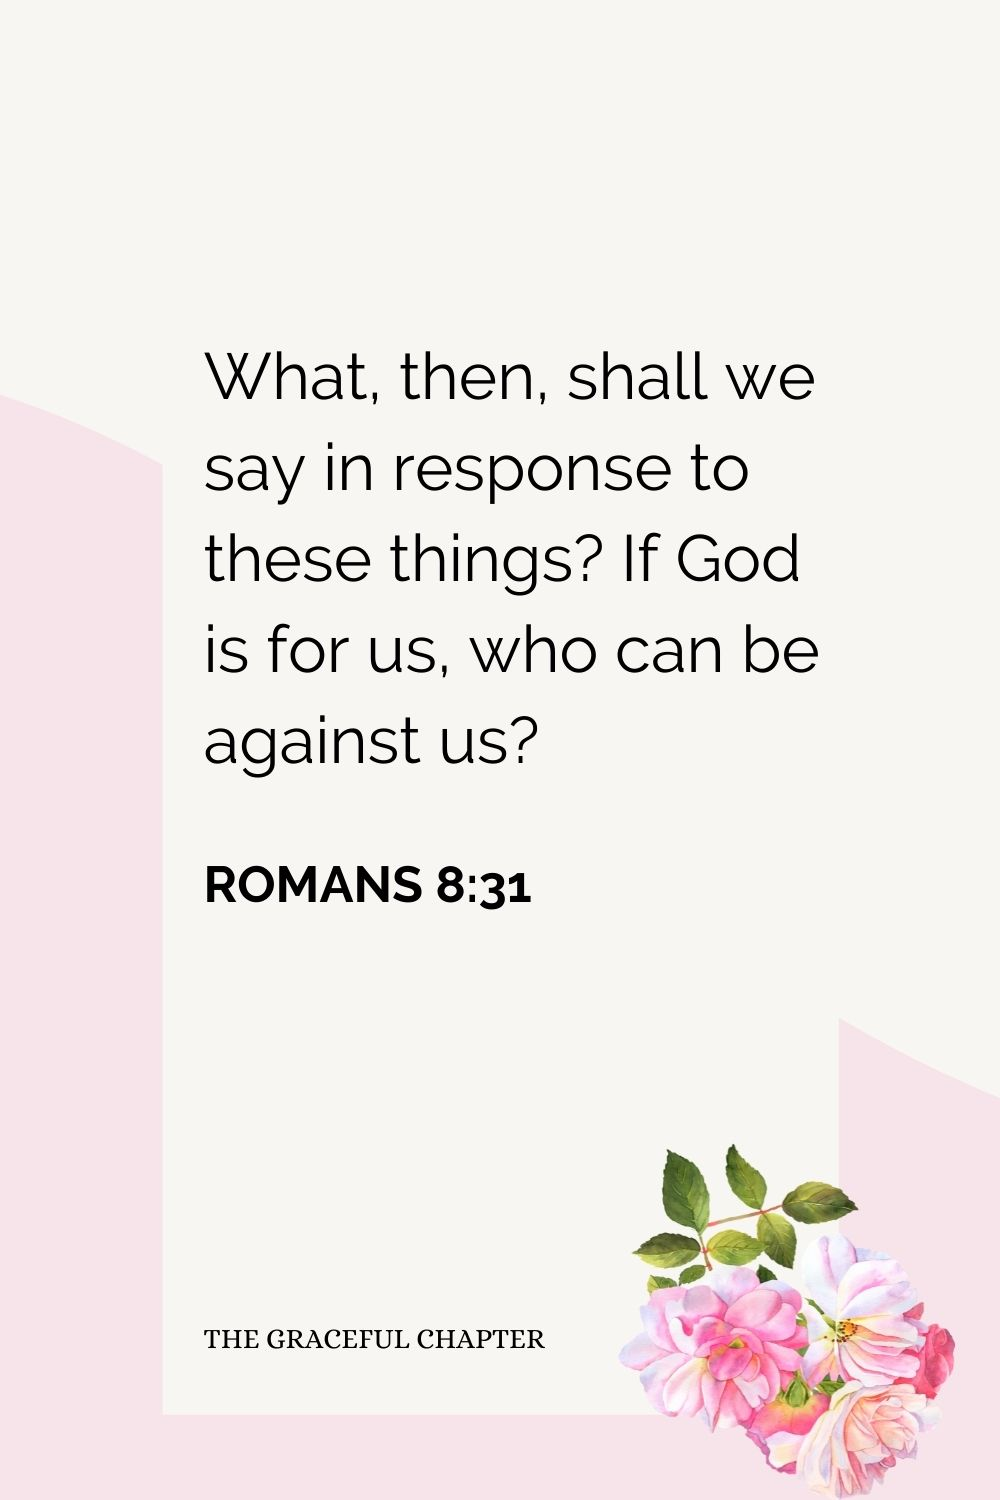 What, then, shall we say in response to these things? If God is for us, who can be against us? Romans 8:31